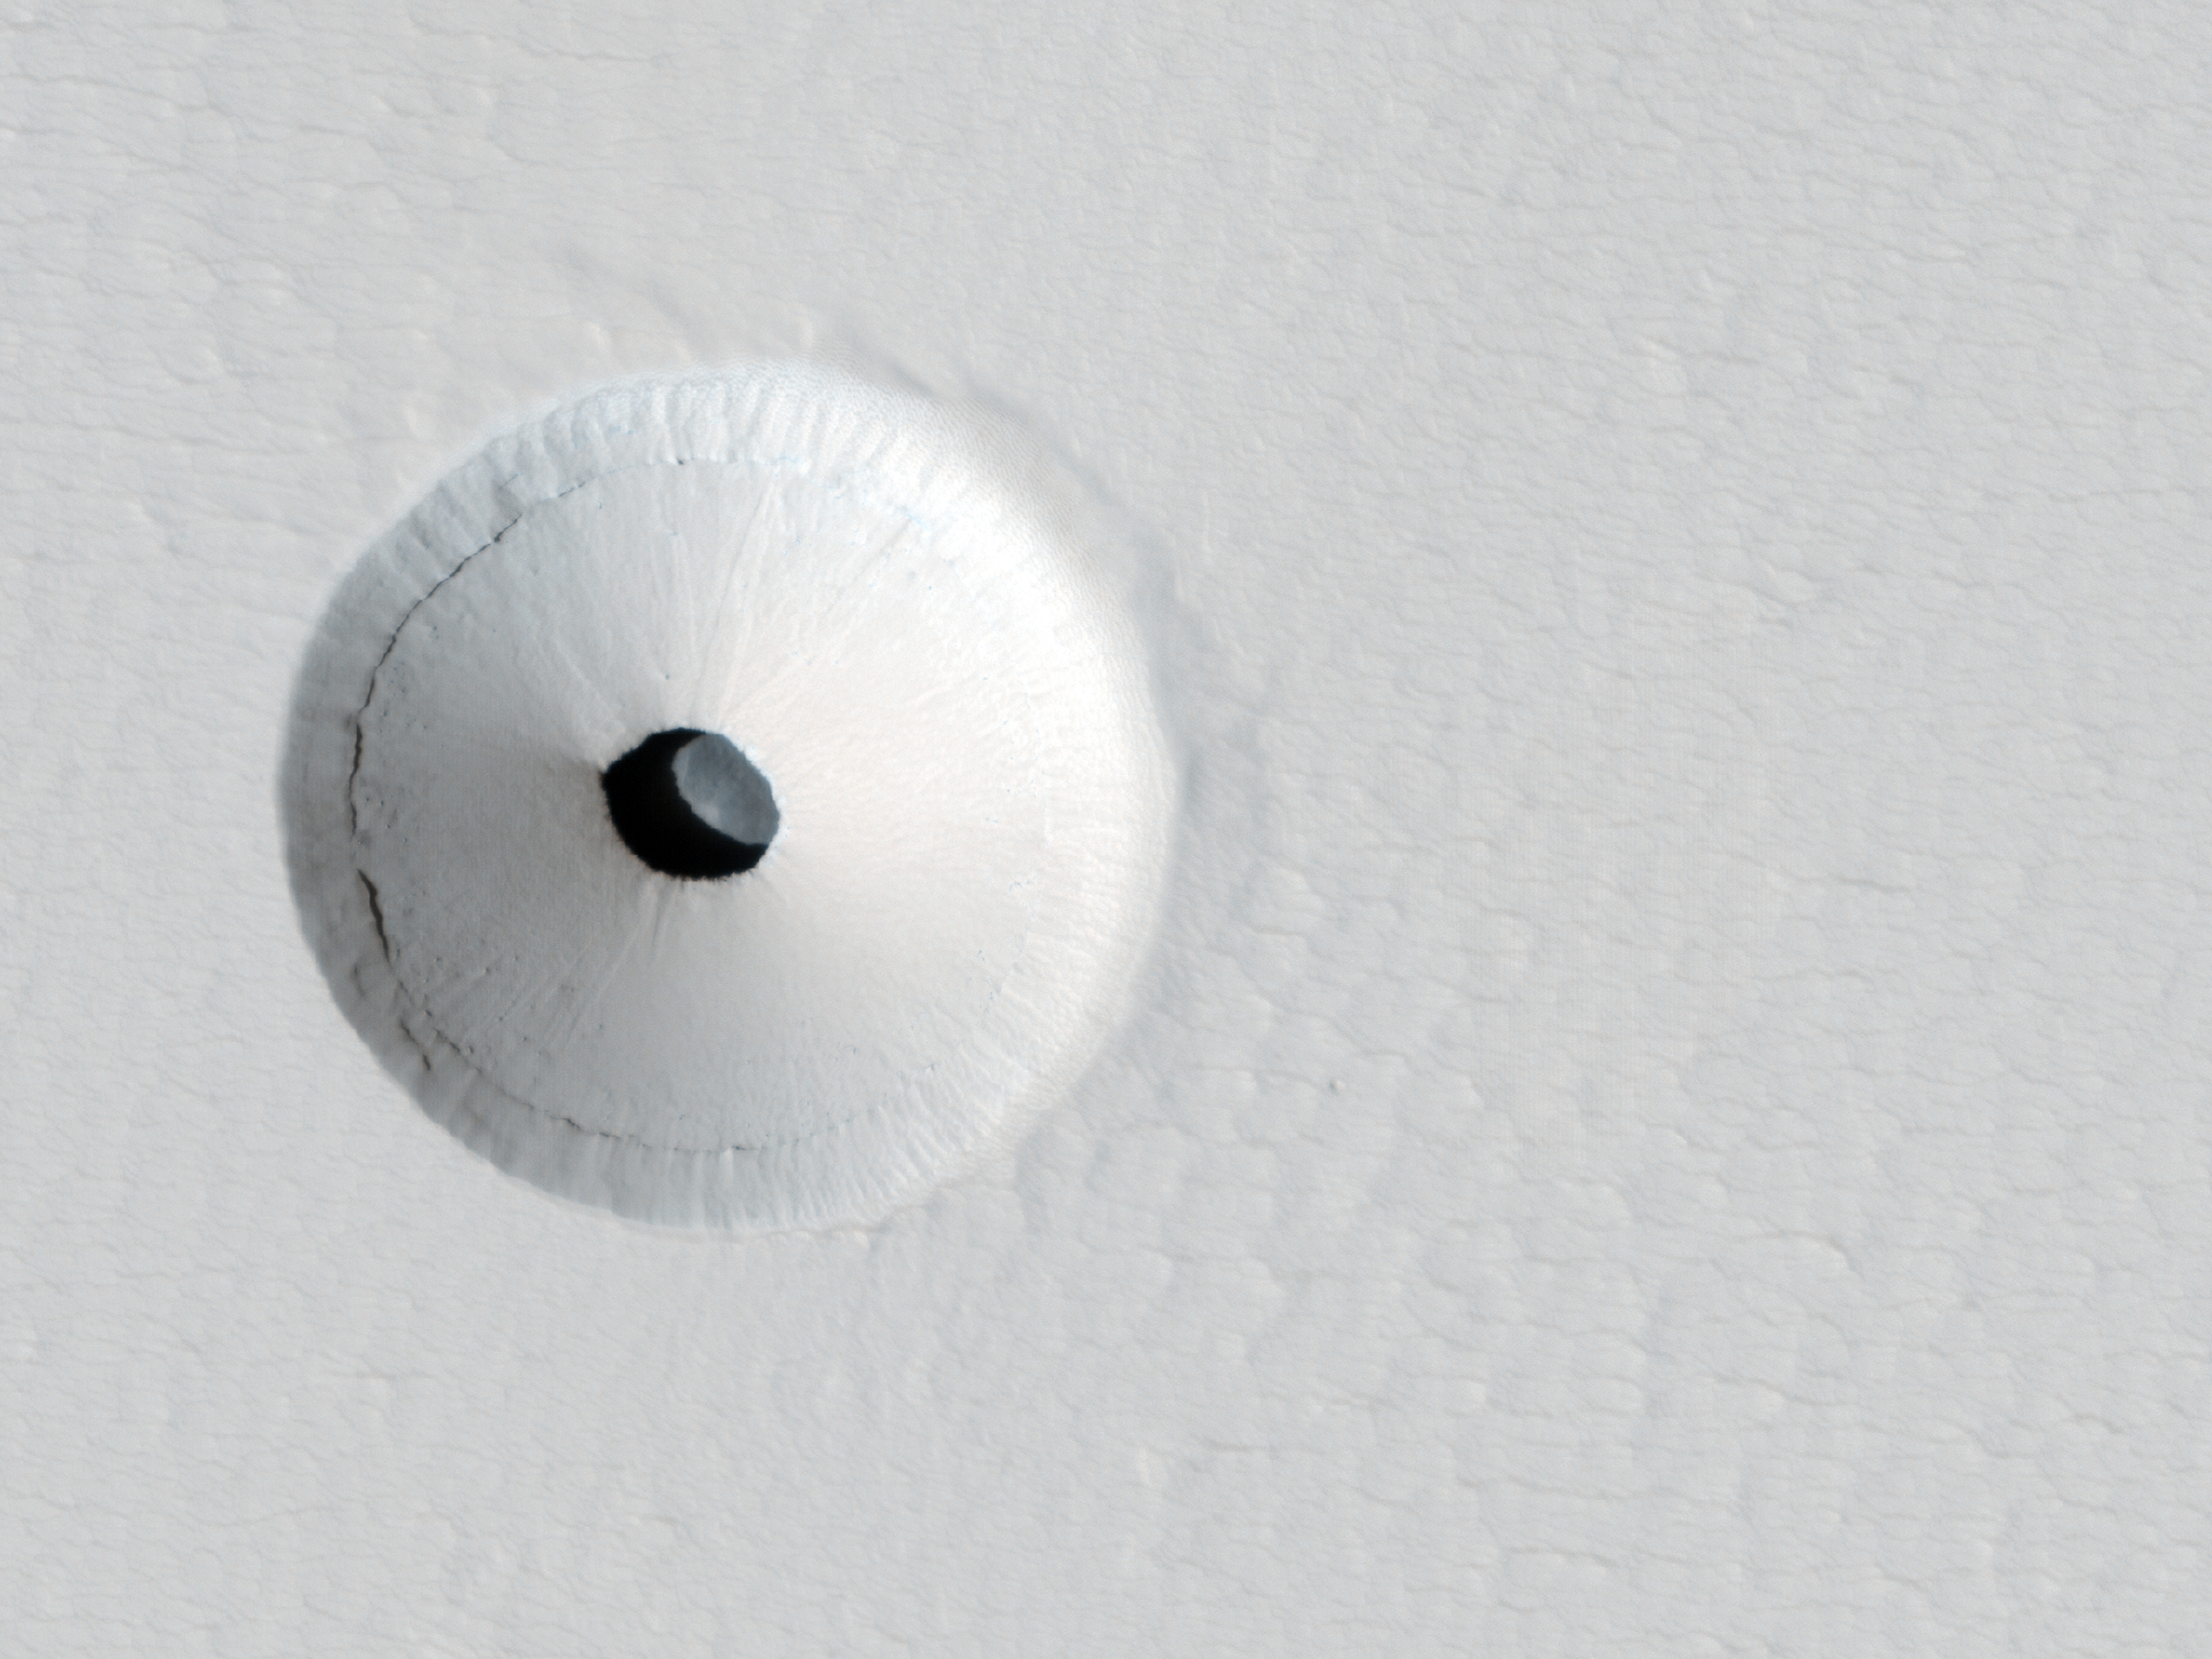 2014 March 9 - A Hole in Mars